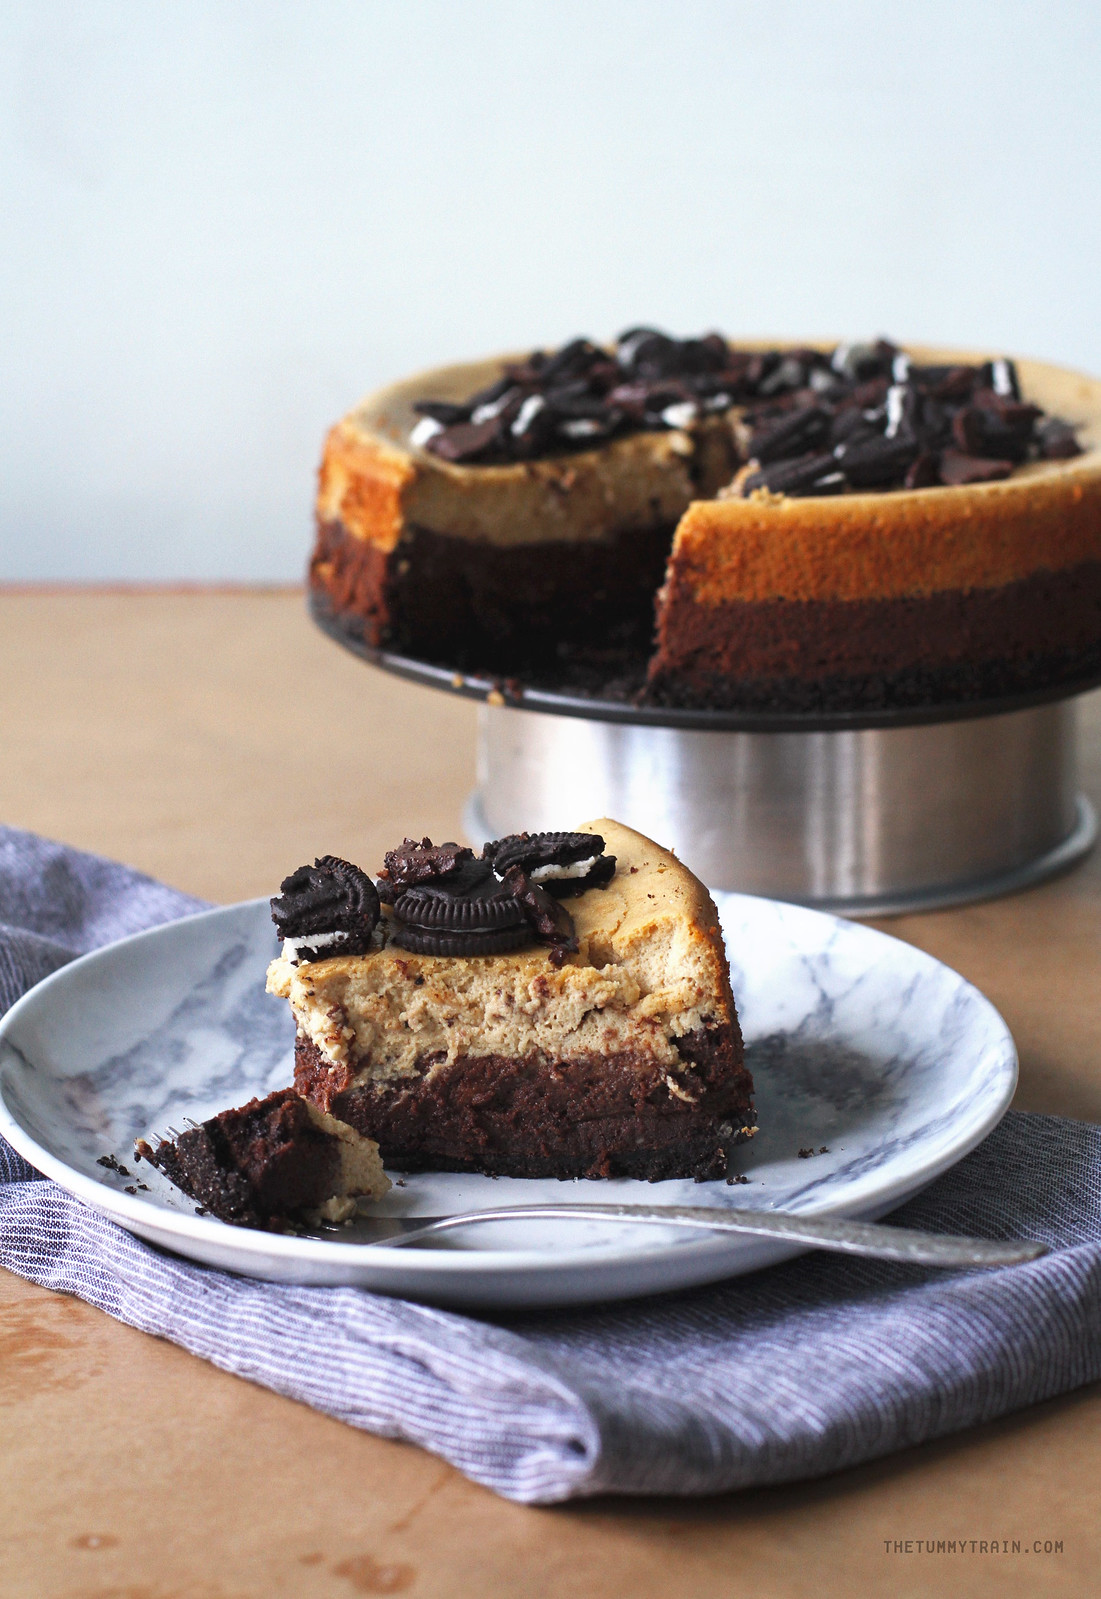 30595552750 6fc385c6c0 h - This Chocolate & Coffee Cheesecake is insanely good